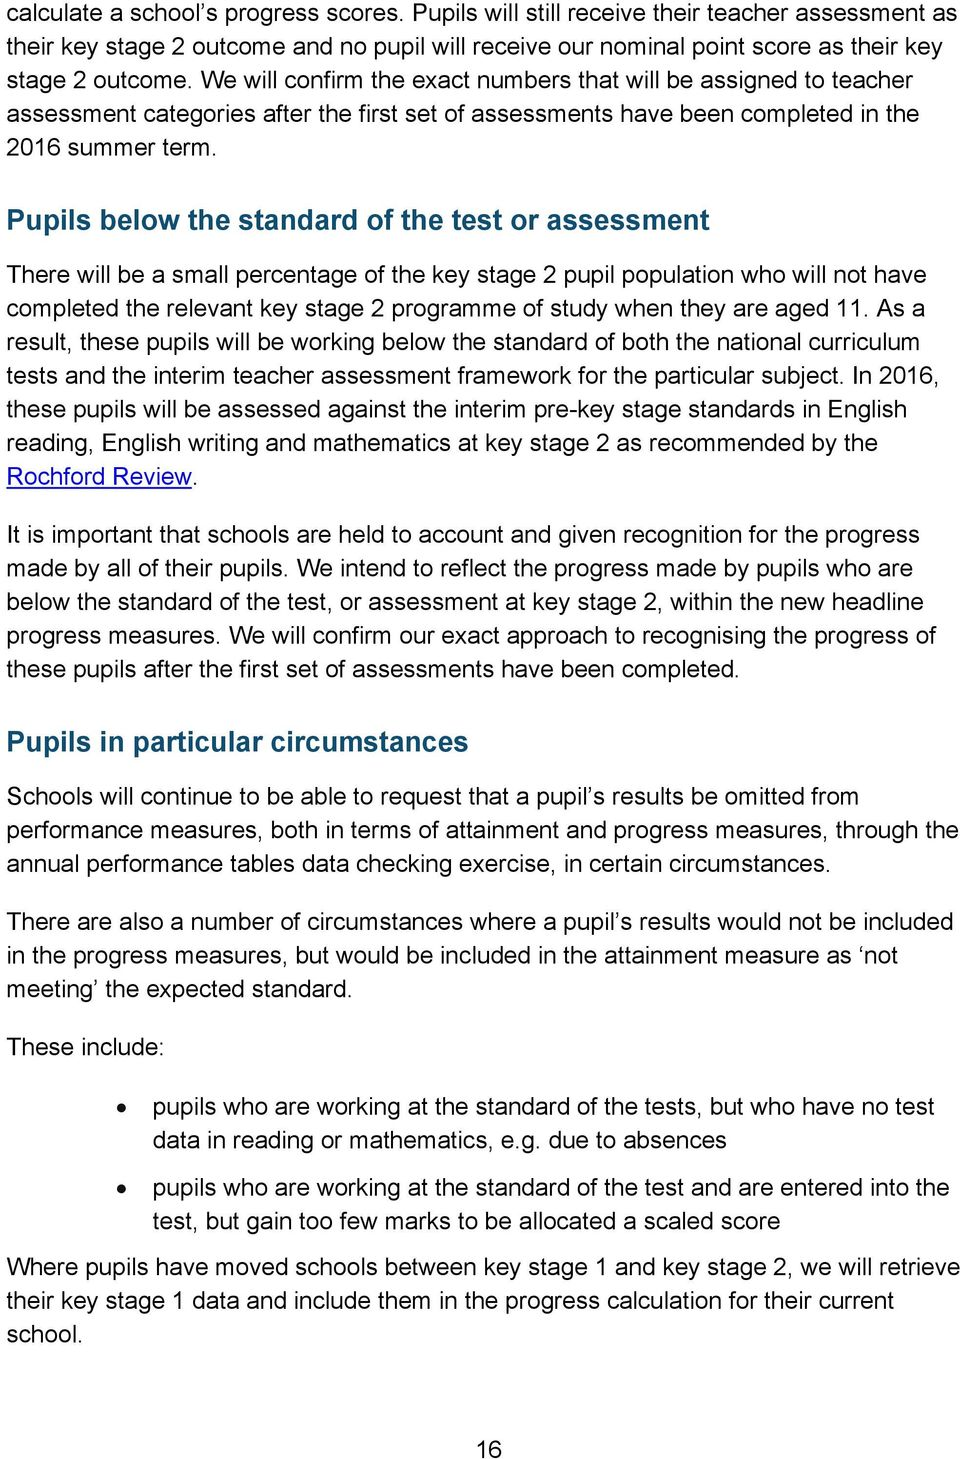 Pupils below the standard of the test or assessment There will be a small percentage of the key stage 2 pupil population who will not have completed the relevant key stage 2 programme of study when